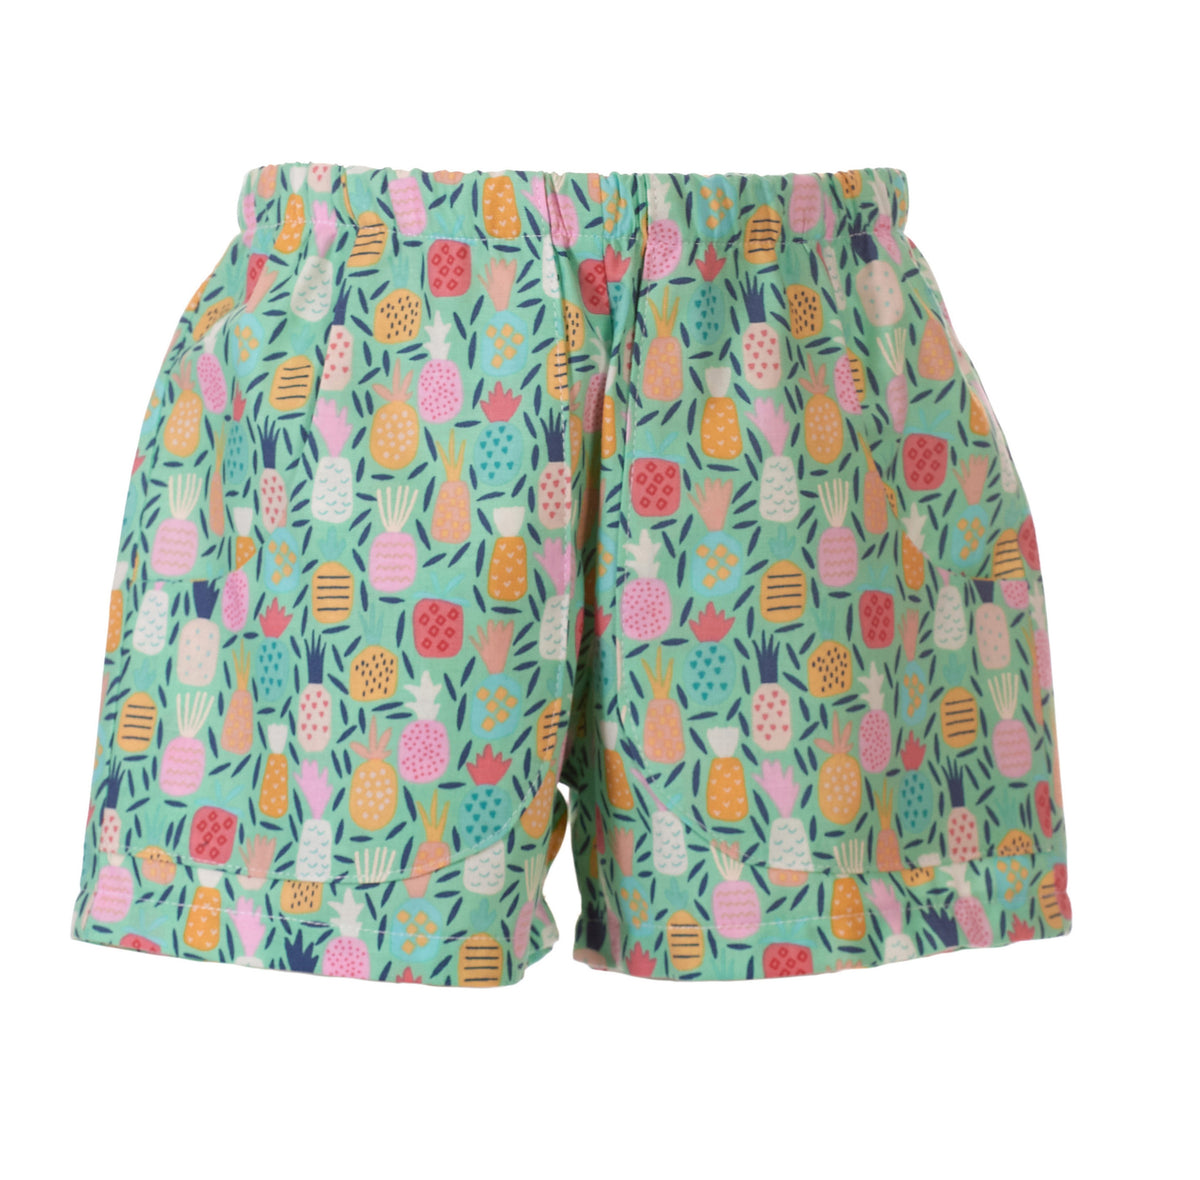 Girls Shorts, Copacabana